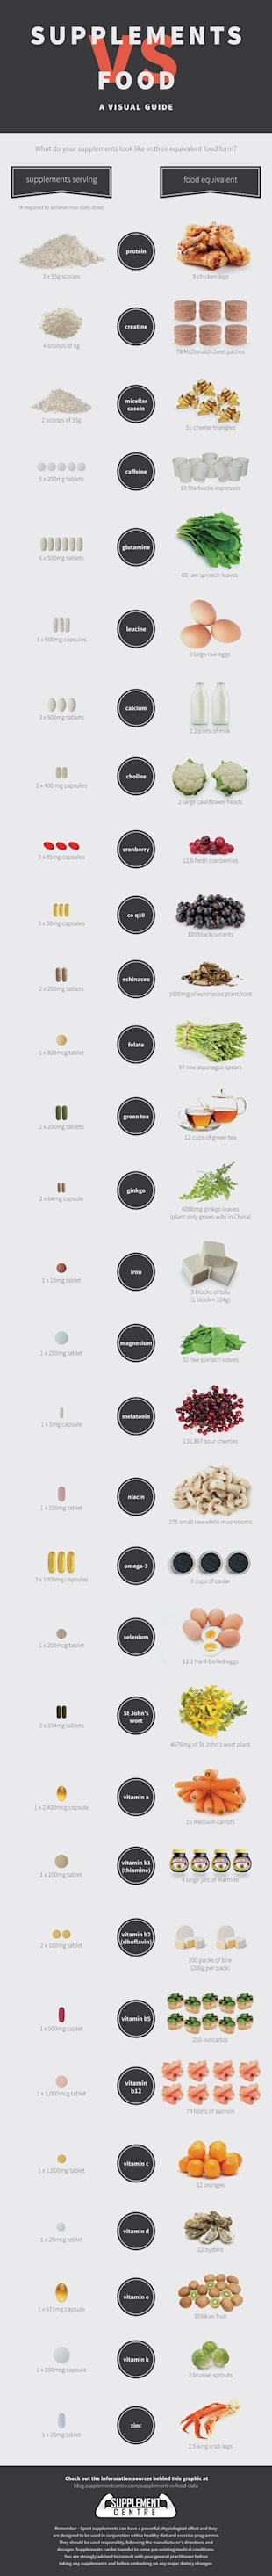 Supplements Vs Food   A Visual Guide [Infographic] image supplements vs food final version